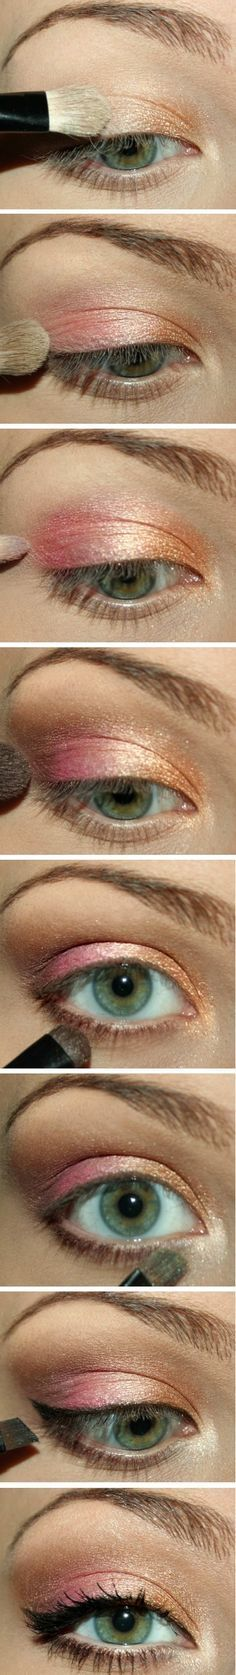 Normally... you would not put these 2 colors together...however this pink and peach eye color tutorial brings a great imagination of color that will match many beautiful summer outfits!~Kimberly Robyn